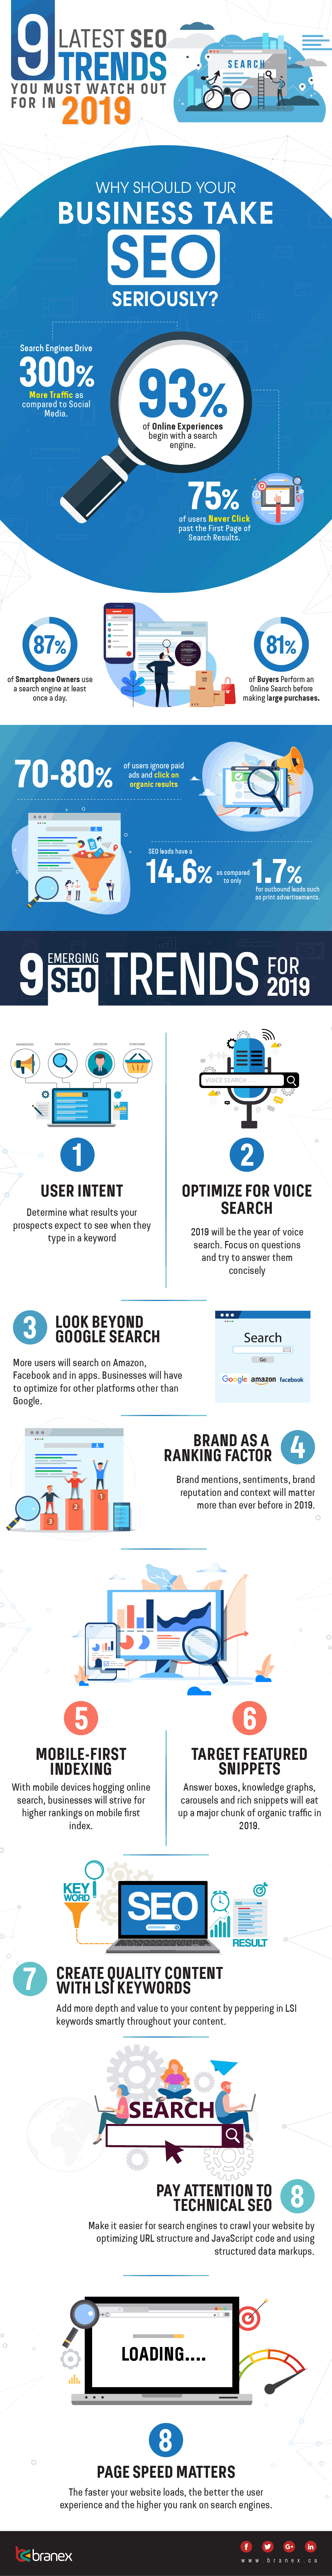 Infographic looks at emerging SEO trends